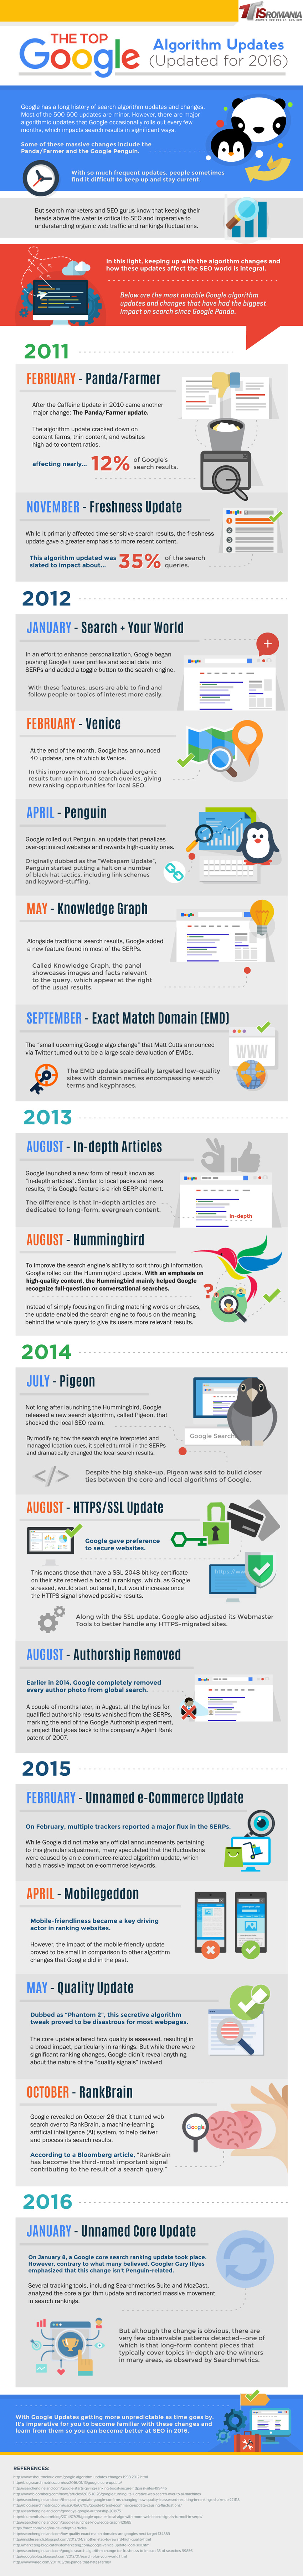 the-top-google-algorithm-updates-how-they-affect-your-website1-copy